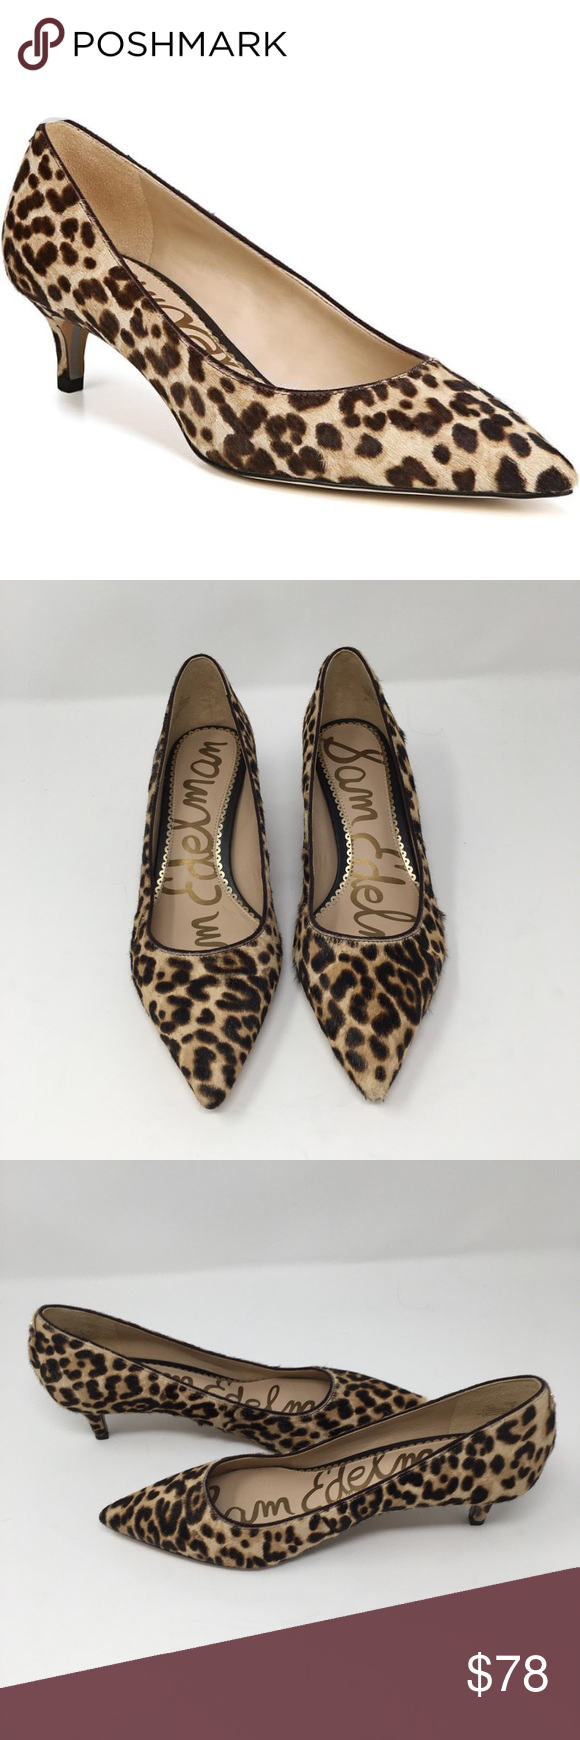 Sam Edelman Dori Pump Leopard Size 6 Sam Edelman Dori Leopard Kitten Heel Pump Excellent Condition Floo Shoes Women Heels Sam Edelman Shoes Kitten Heel Pumps